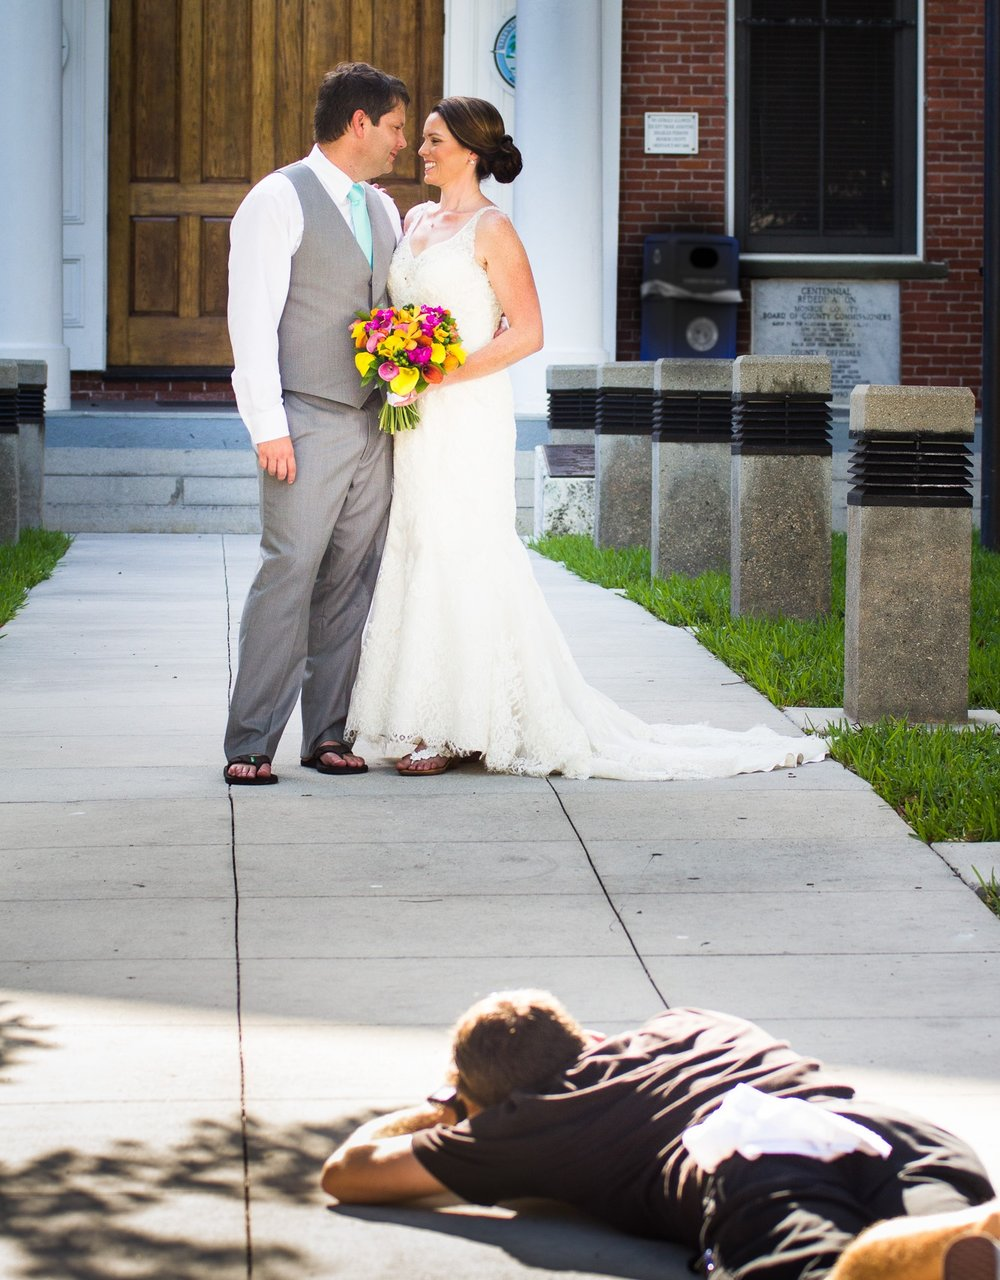 If your photographer assumes an unlikely position, just roll with it….